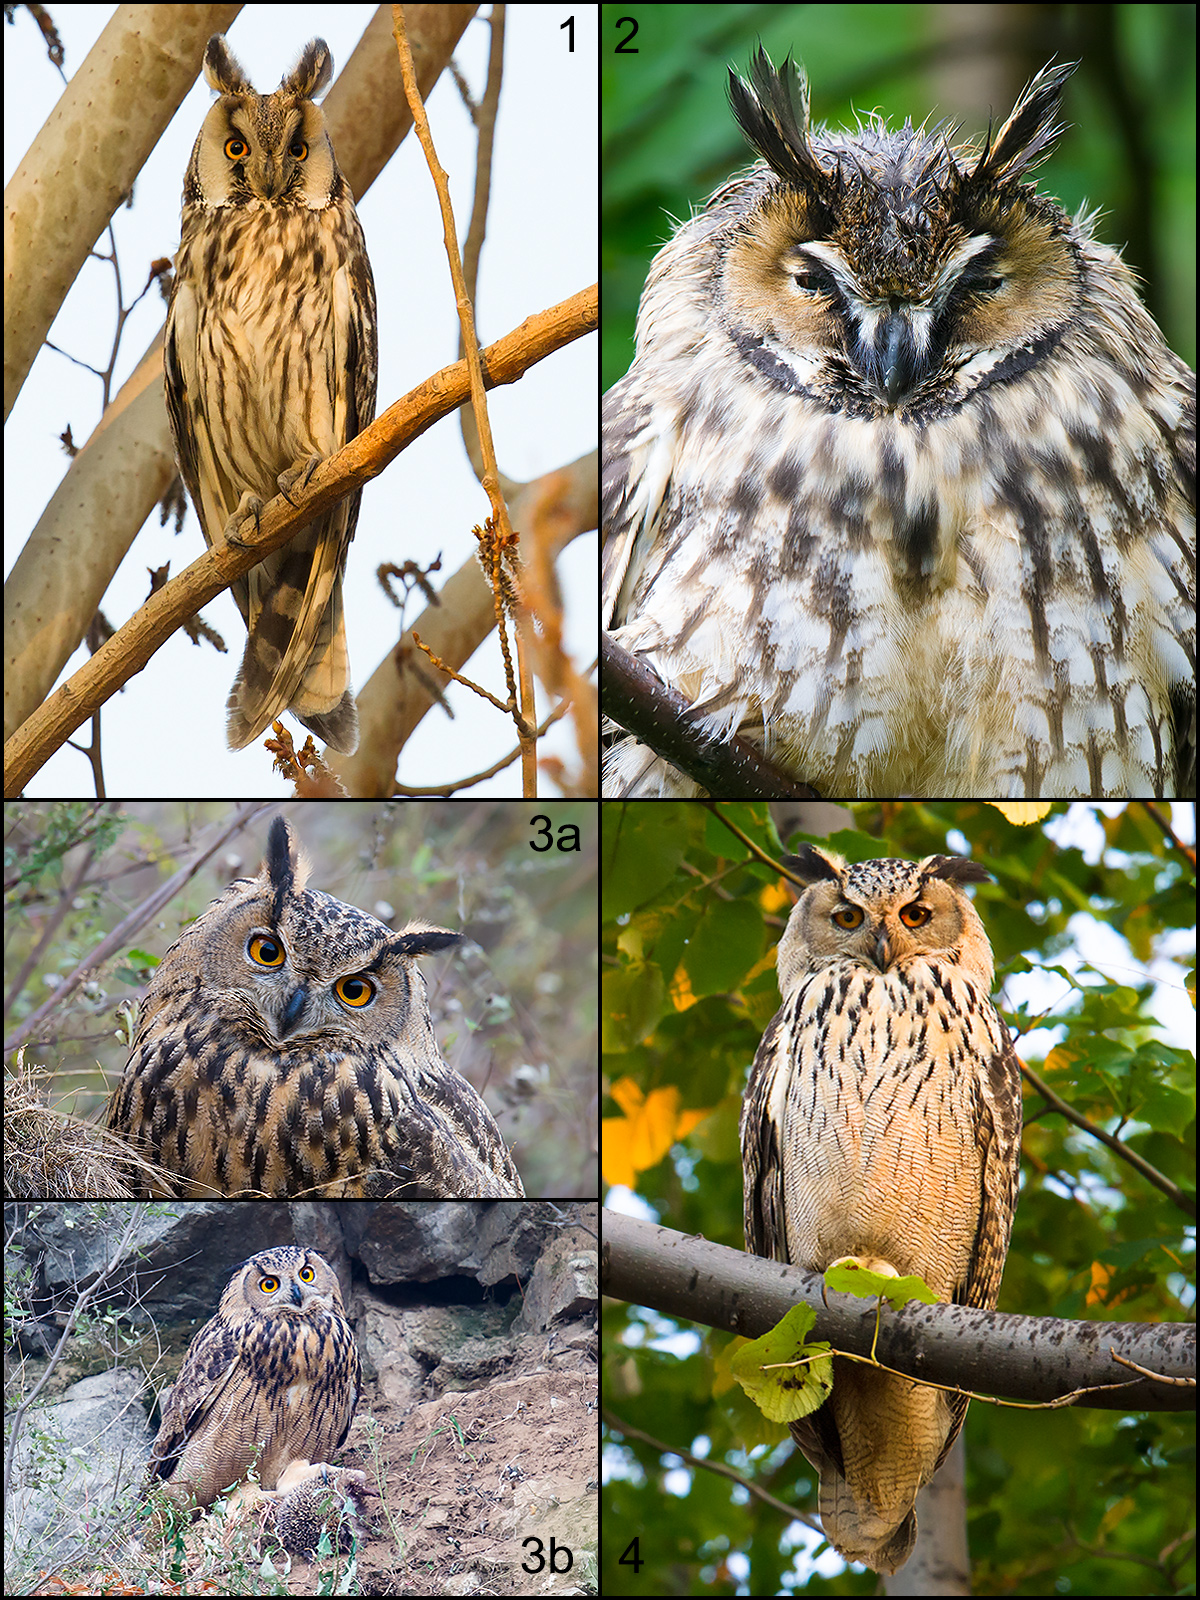 Long-eared Owl (1, 2) and Eurasian Eagle-Owl (3, 4) 'are brown with black streaky plumage, long ear tufts, and fearsome orange eyes,' MacKinnon writes. 'In summer these two owls hunt chipmunks and pikas in dense forest.' 1: Zhalong Reserve, Heilongjiang, May. 2: Xidaquan Forest, Heilongjiang, August. 3a, 3b: near Beidaihe, Hebei, September. 4: Dawucun, Boli, Heilongjiang, August. All by Craig Brelsford.